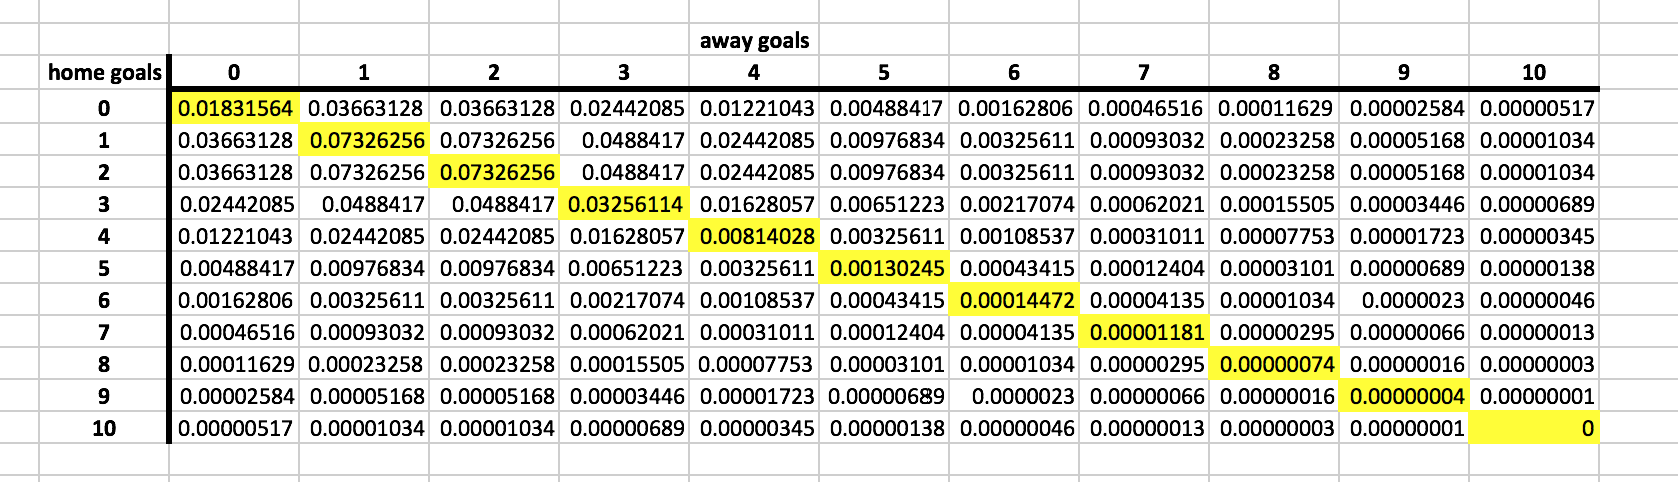 Actually No, Even With Two Identical Teams The Draw Probability Is Still  Only Around 25%, With Home And Away Win Probabilities Of 375% Each